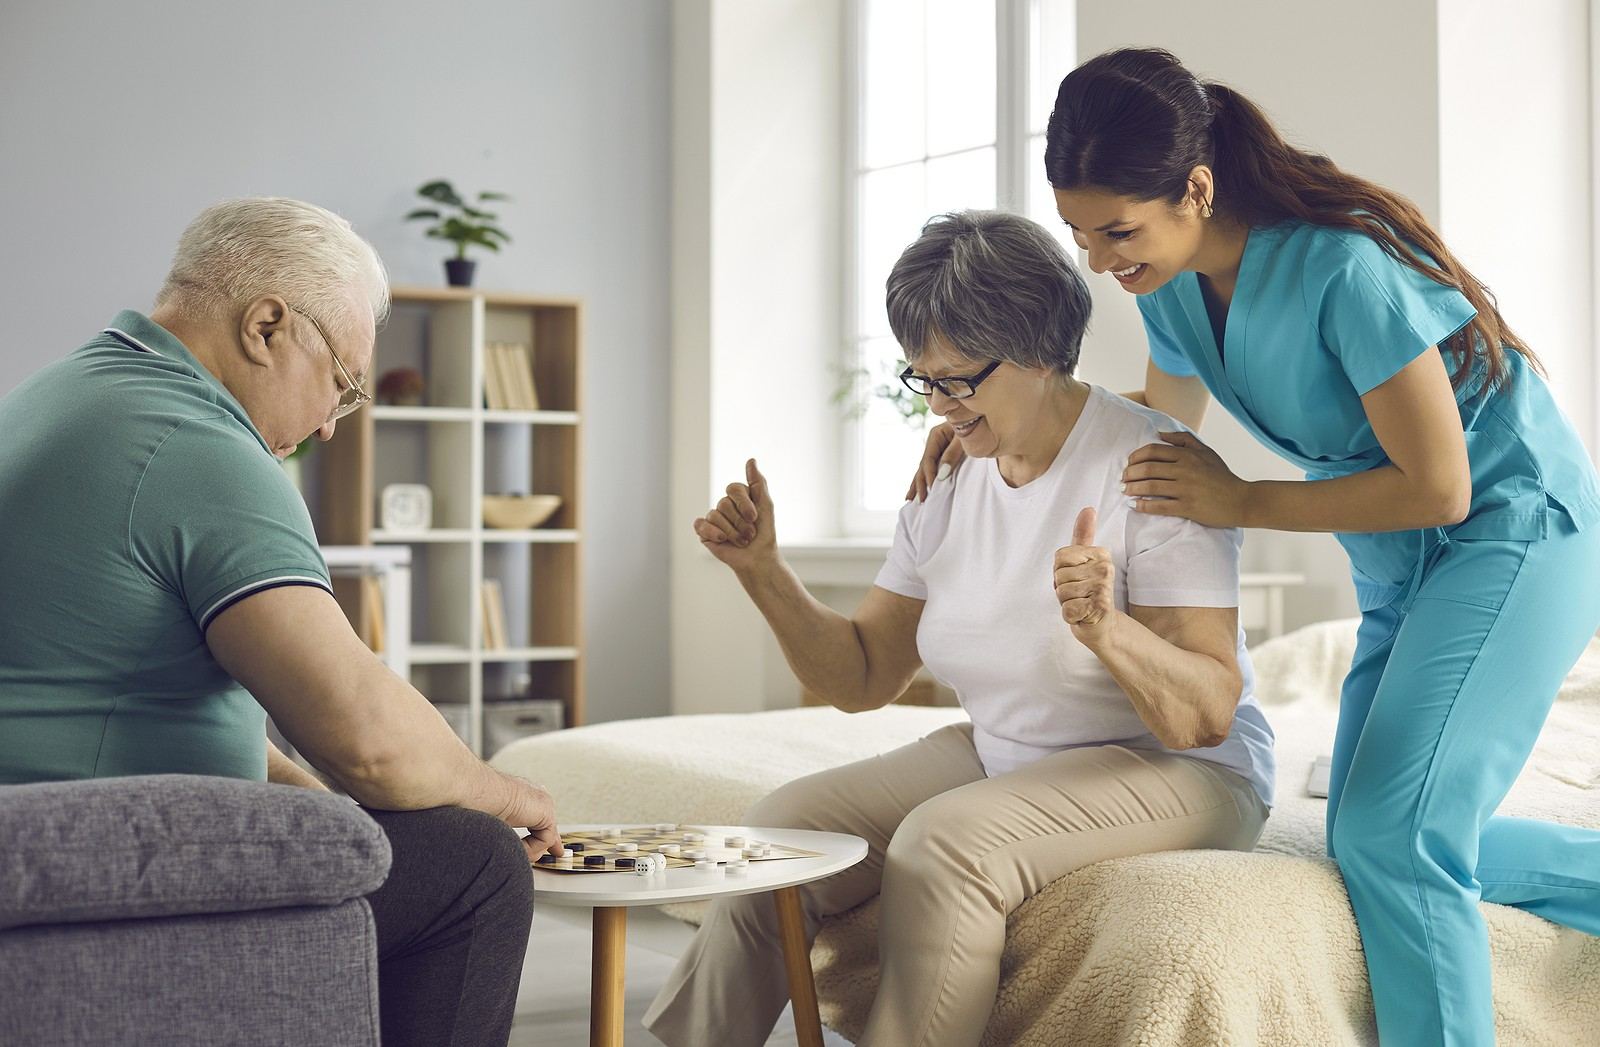 Caregiver interacting with dementia patients